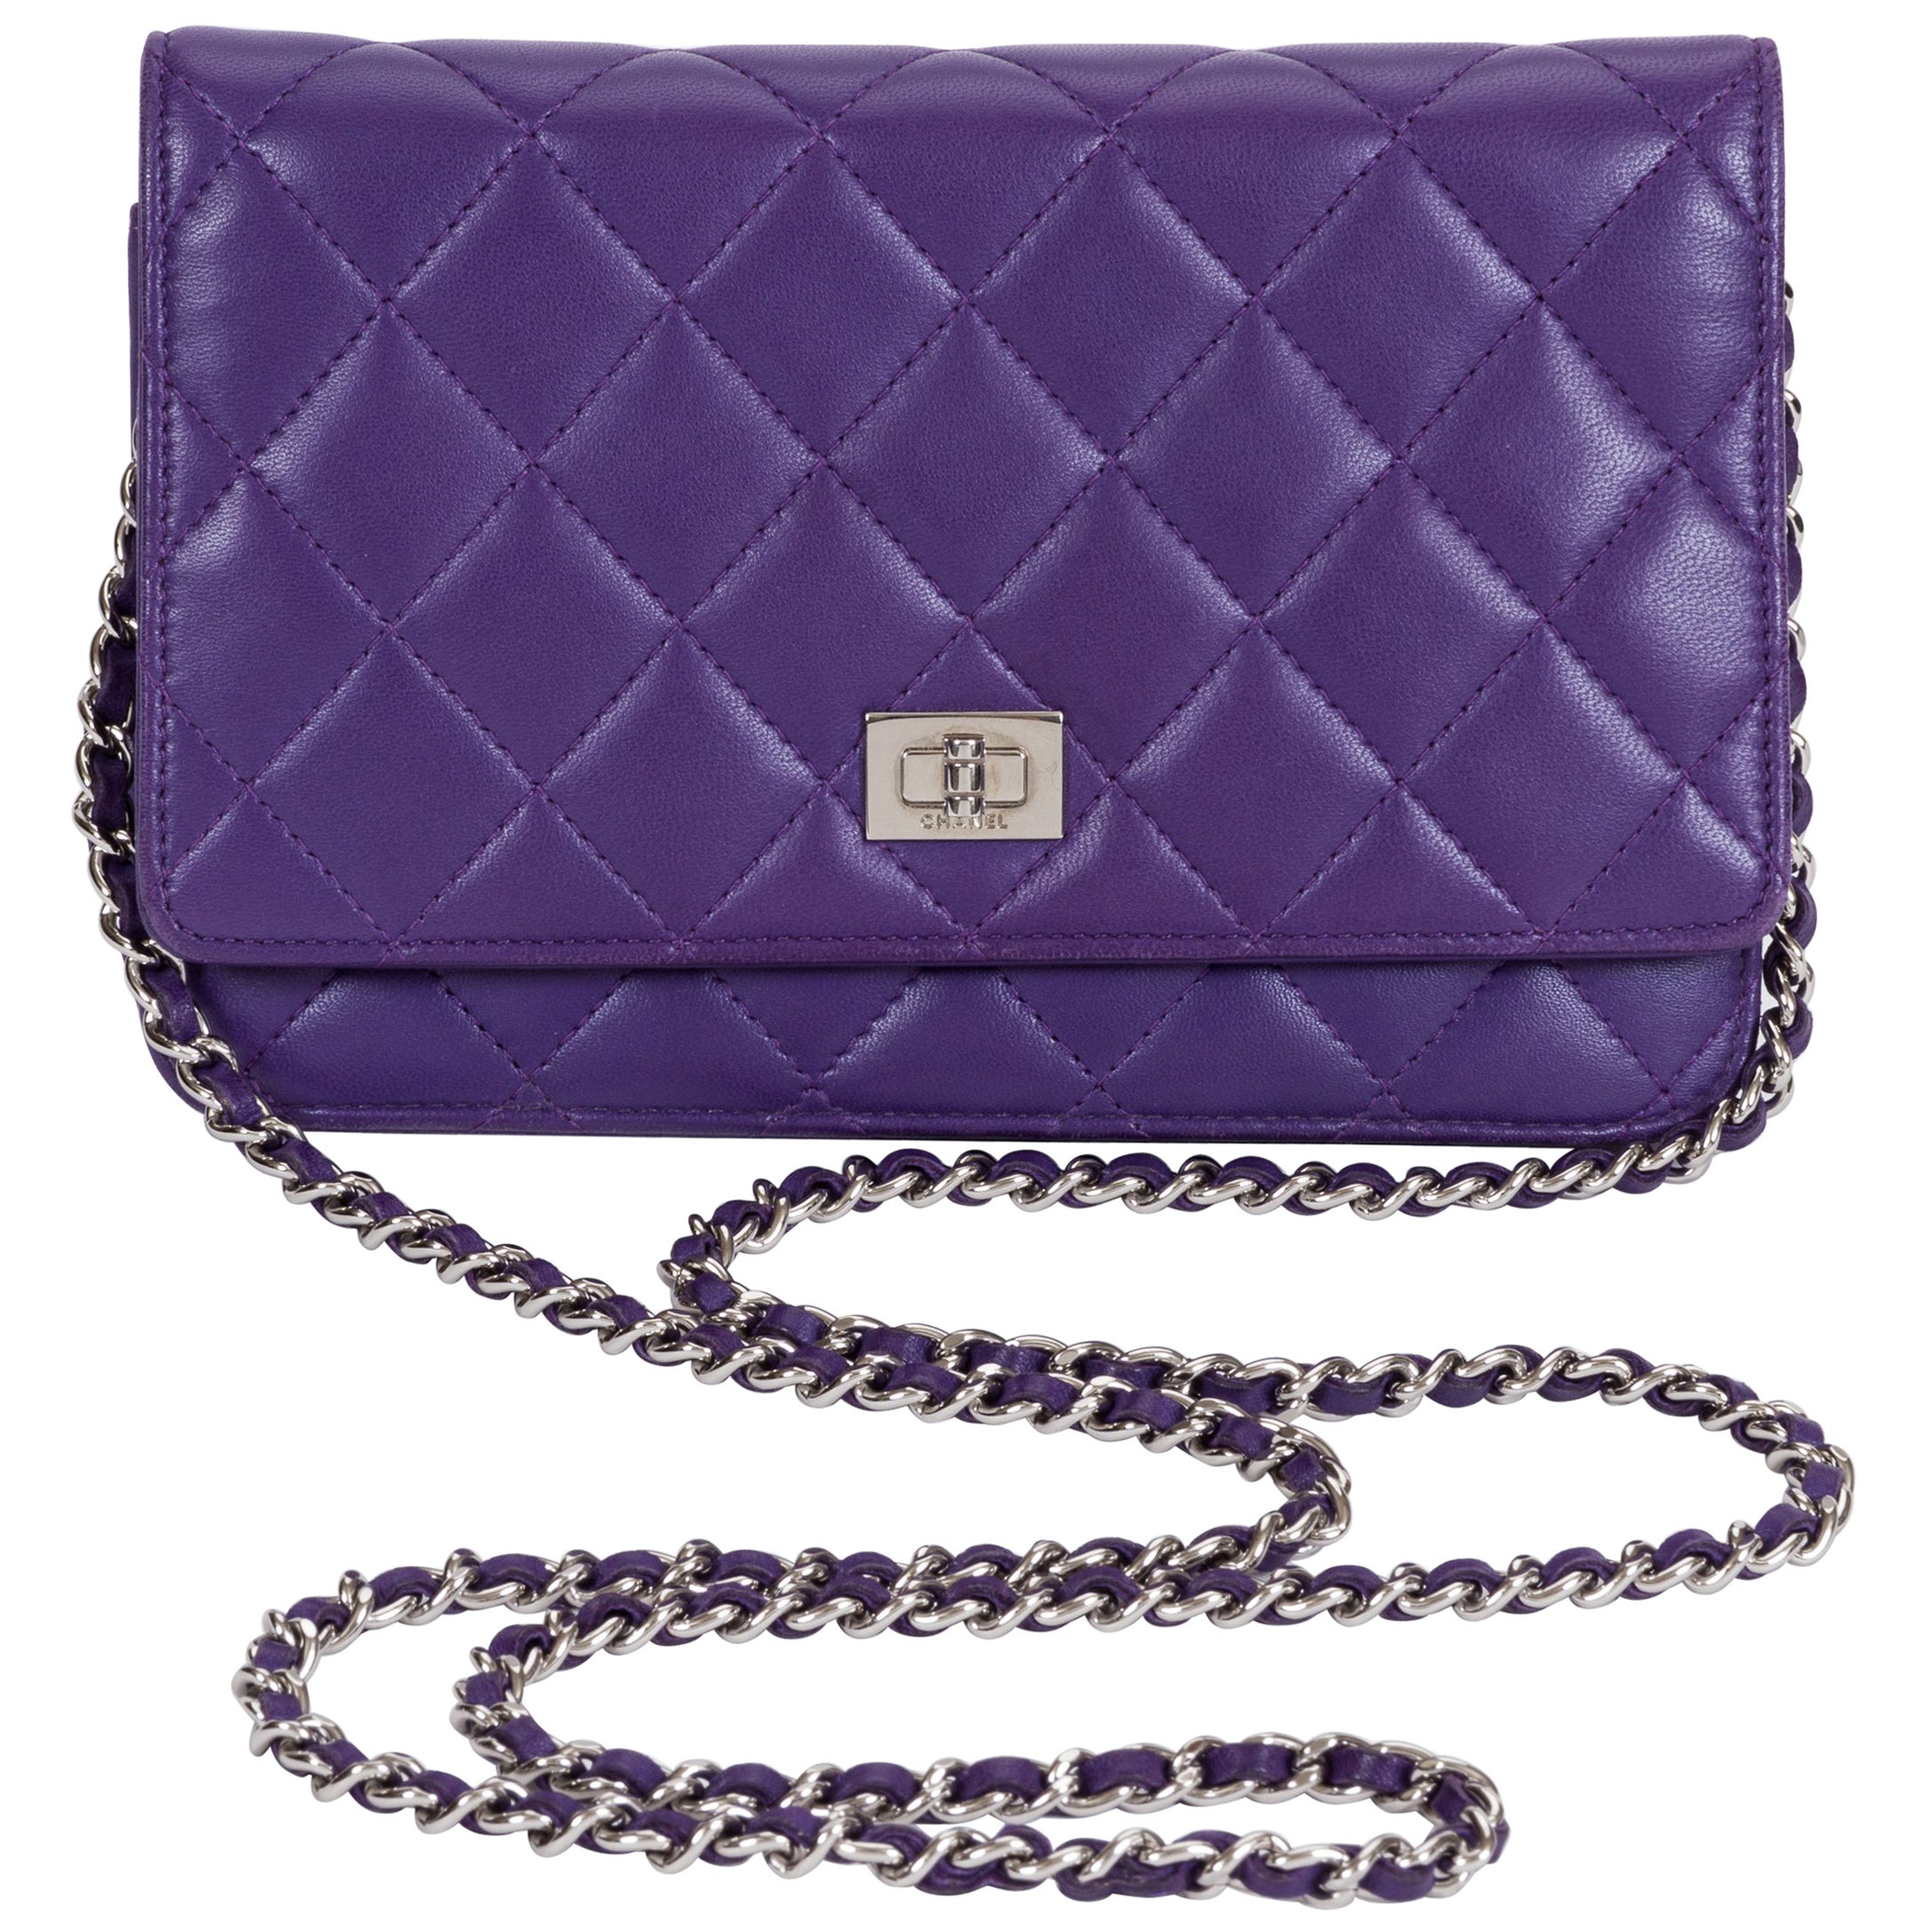 1898946072e6 Chanel Reissue Purple Wallet On A Chain Bag at 1stdibs